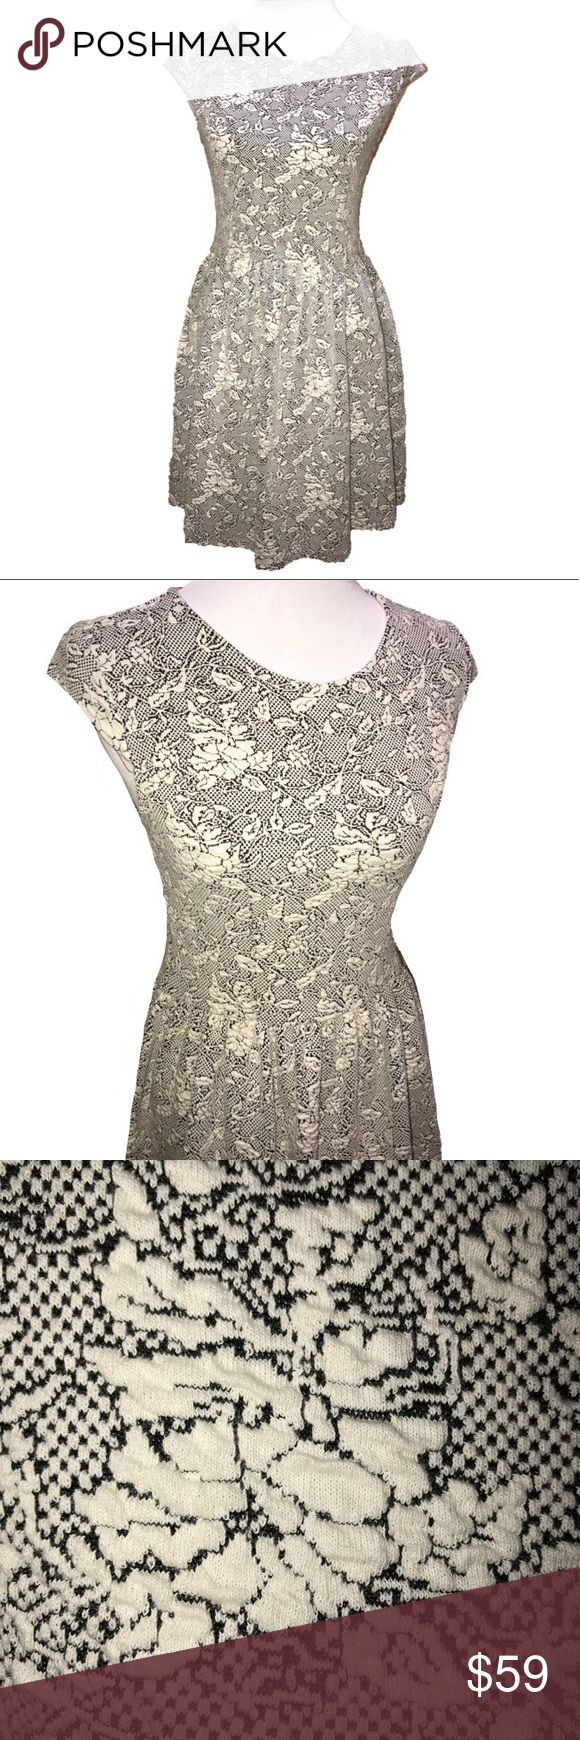 Topshop Quilted Jacquard Floral Dress Black Cream Topshop